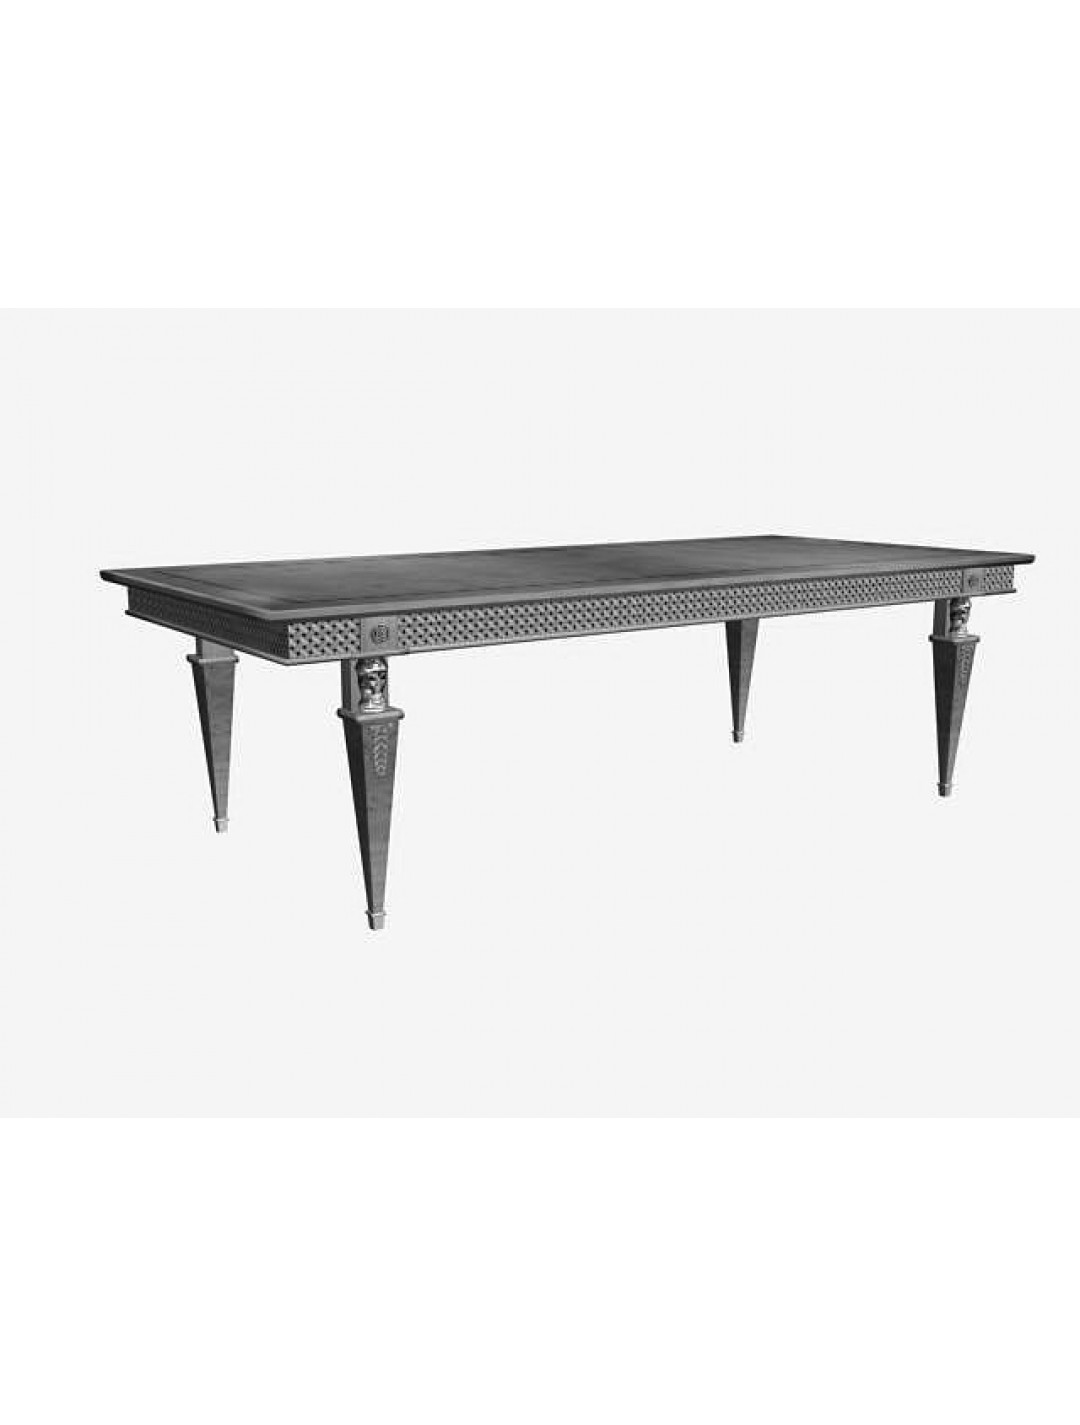 LEONID DINING-TABLE,  MYRTLE WOOD, 250*110, WITH EXTENDABLE TOP TO 350 CM